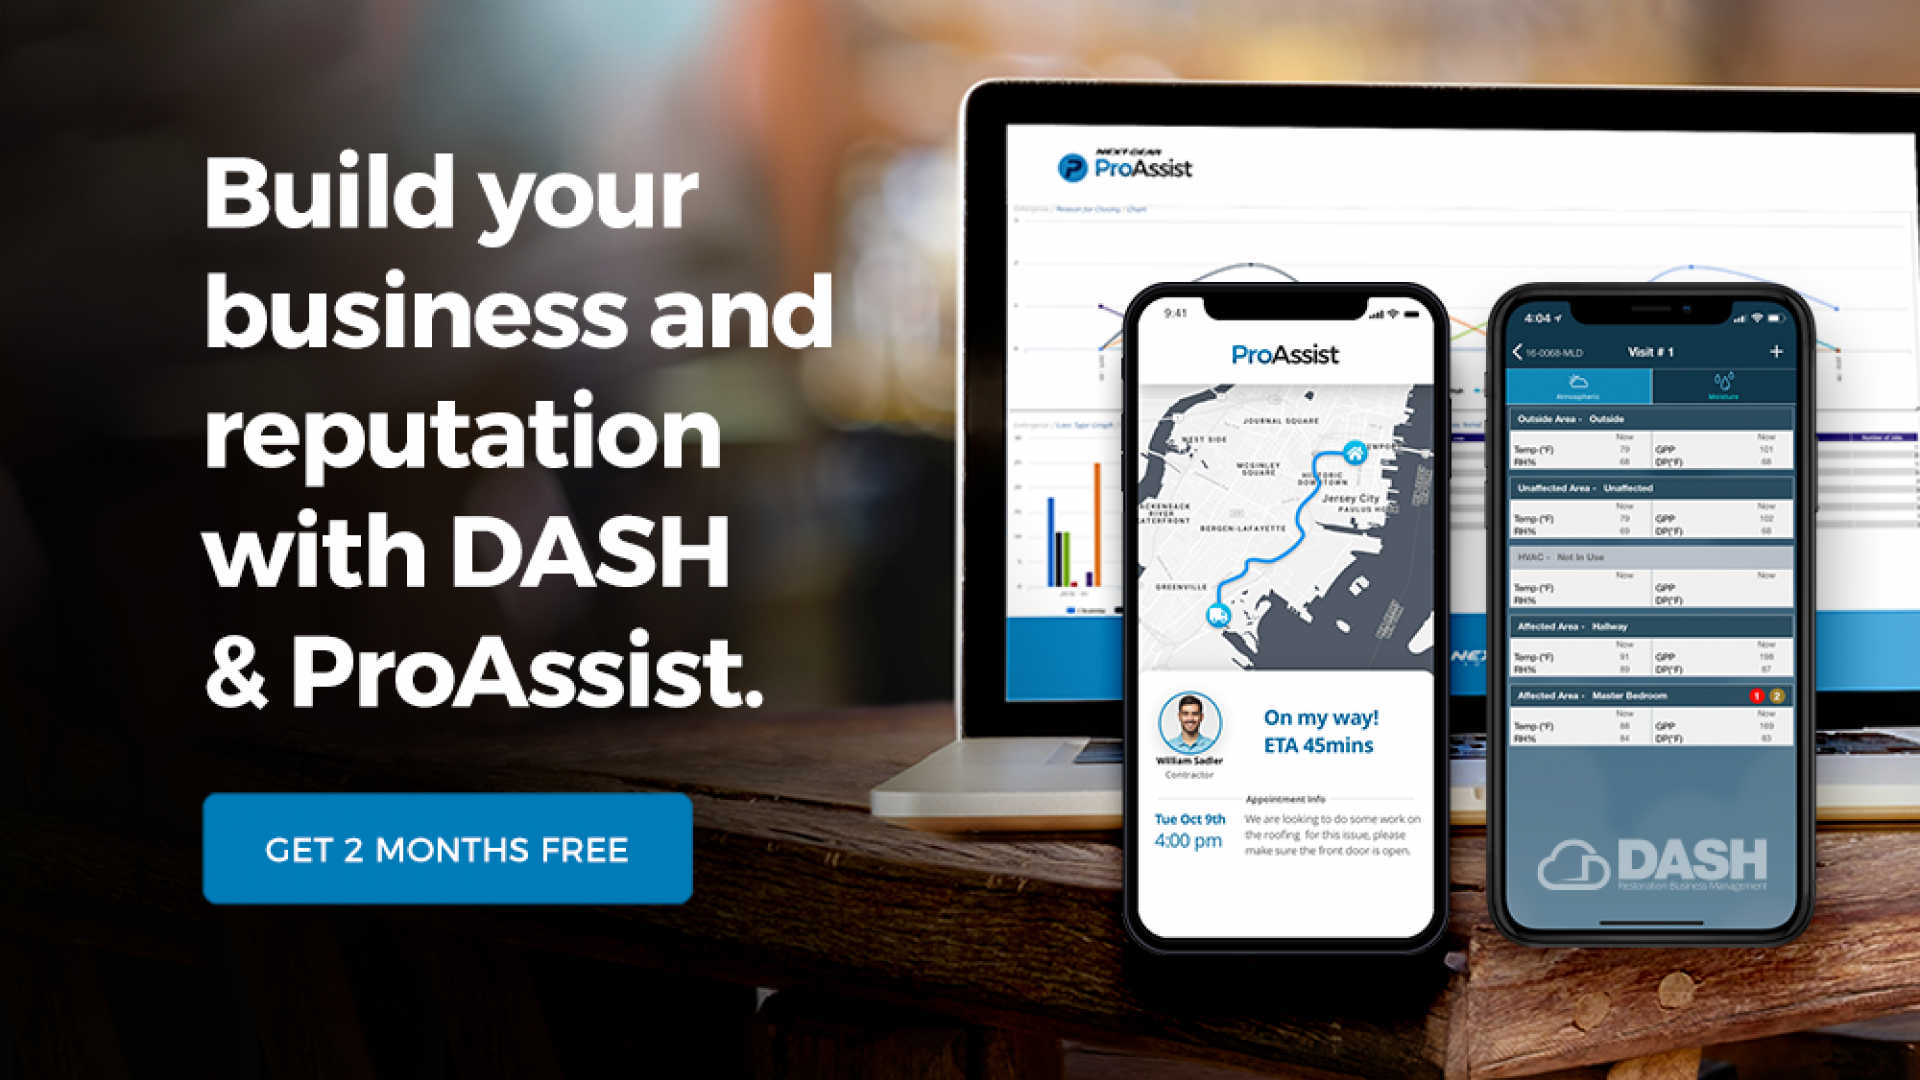 Build your business and reputation with DASH & ProAssist. Get 2 Months Free